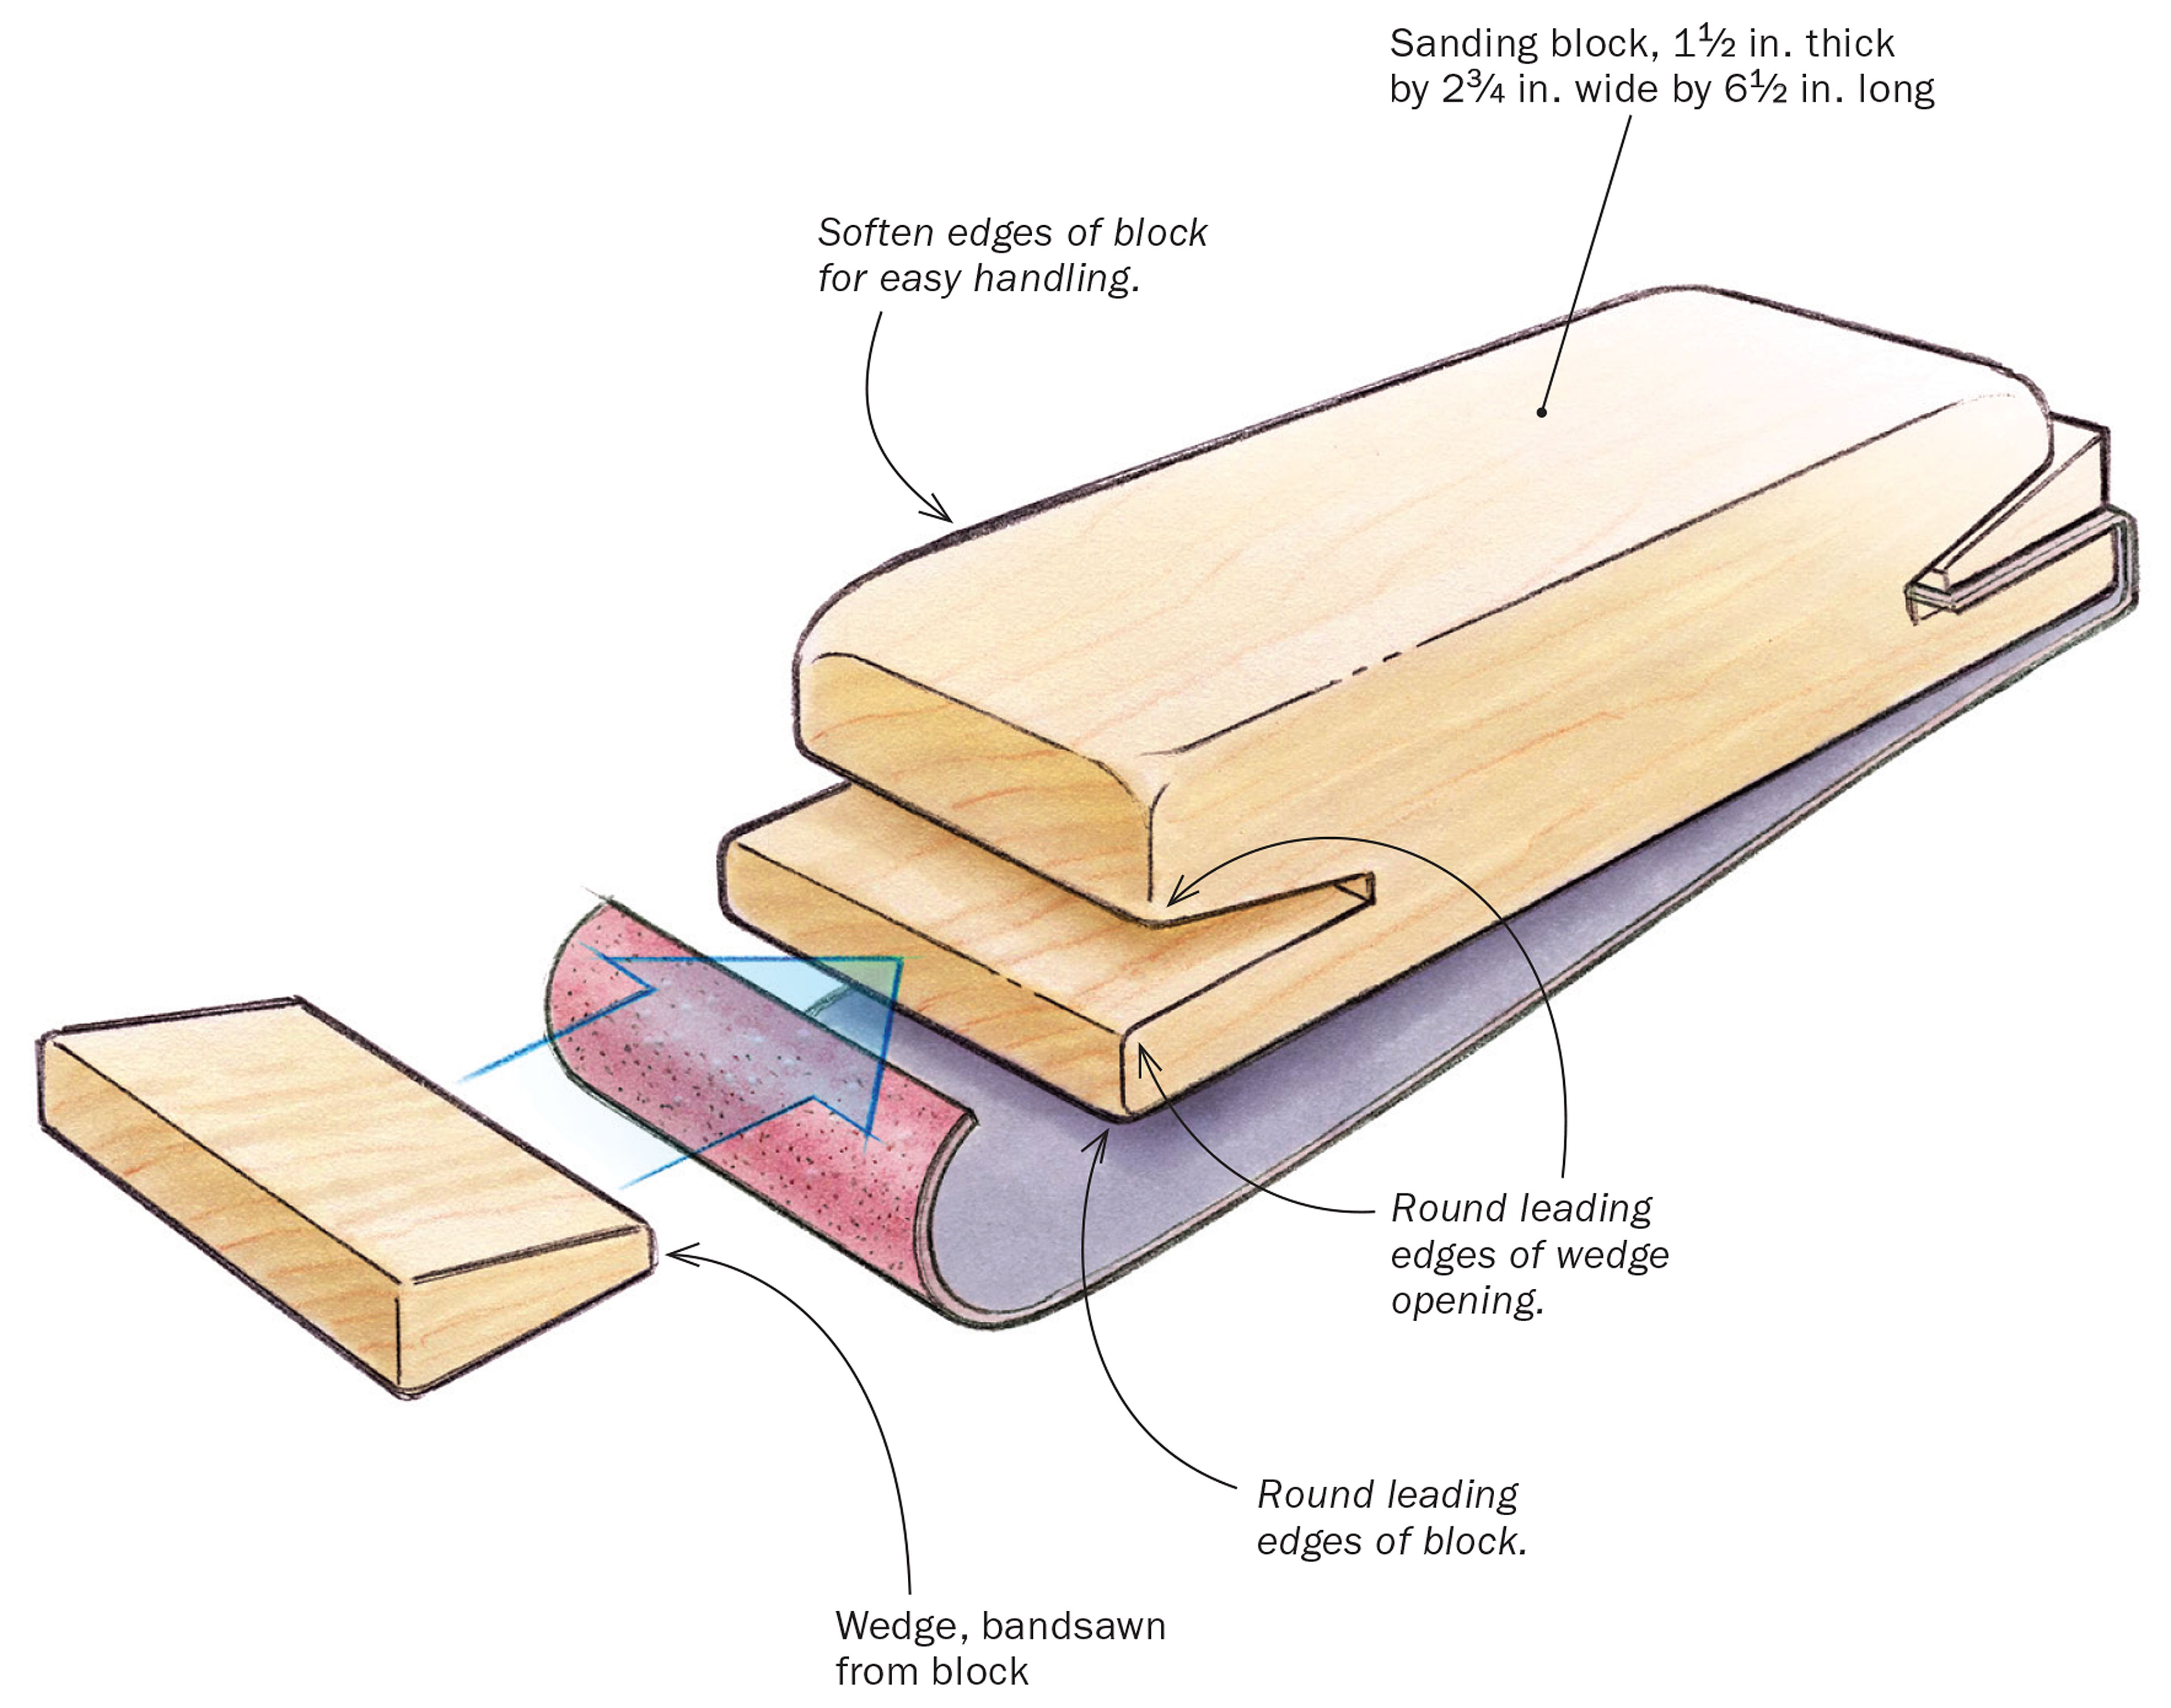 sanding block is quick to make and easy to use - finewoodworking